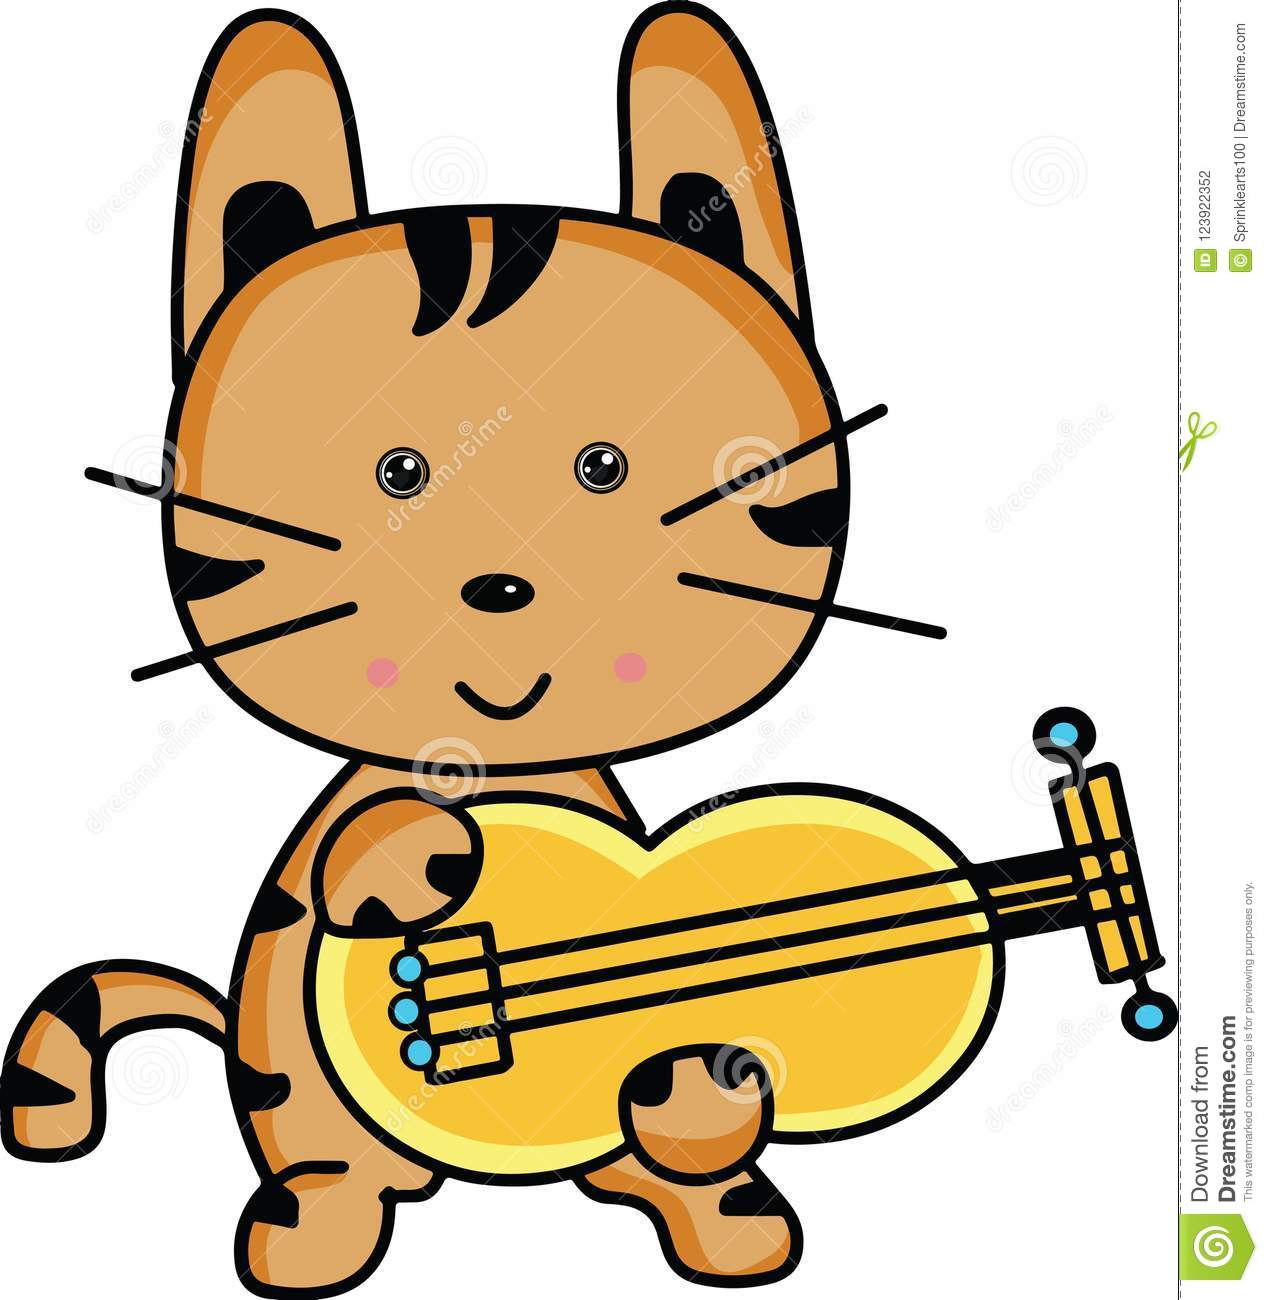 cute cartoon cat playing musical instrument stock illustration rh dreamstime com Vector Musical Background Guitar Vector